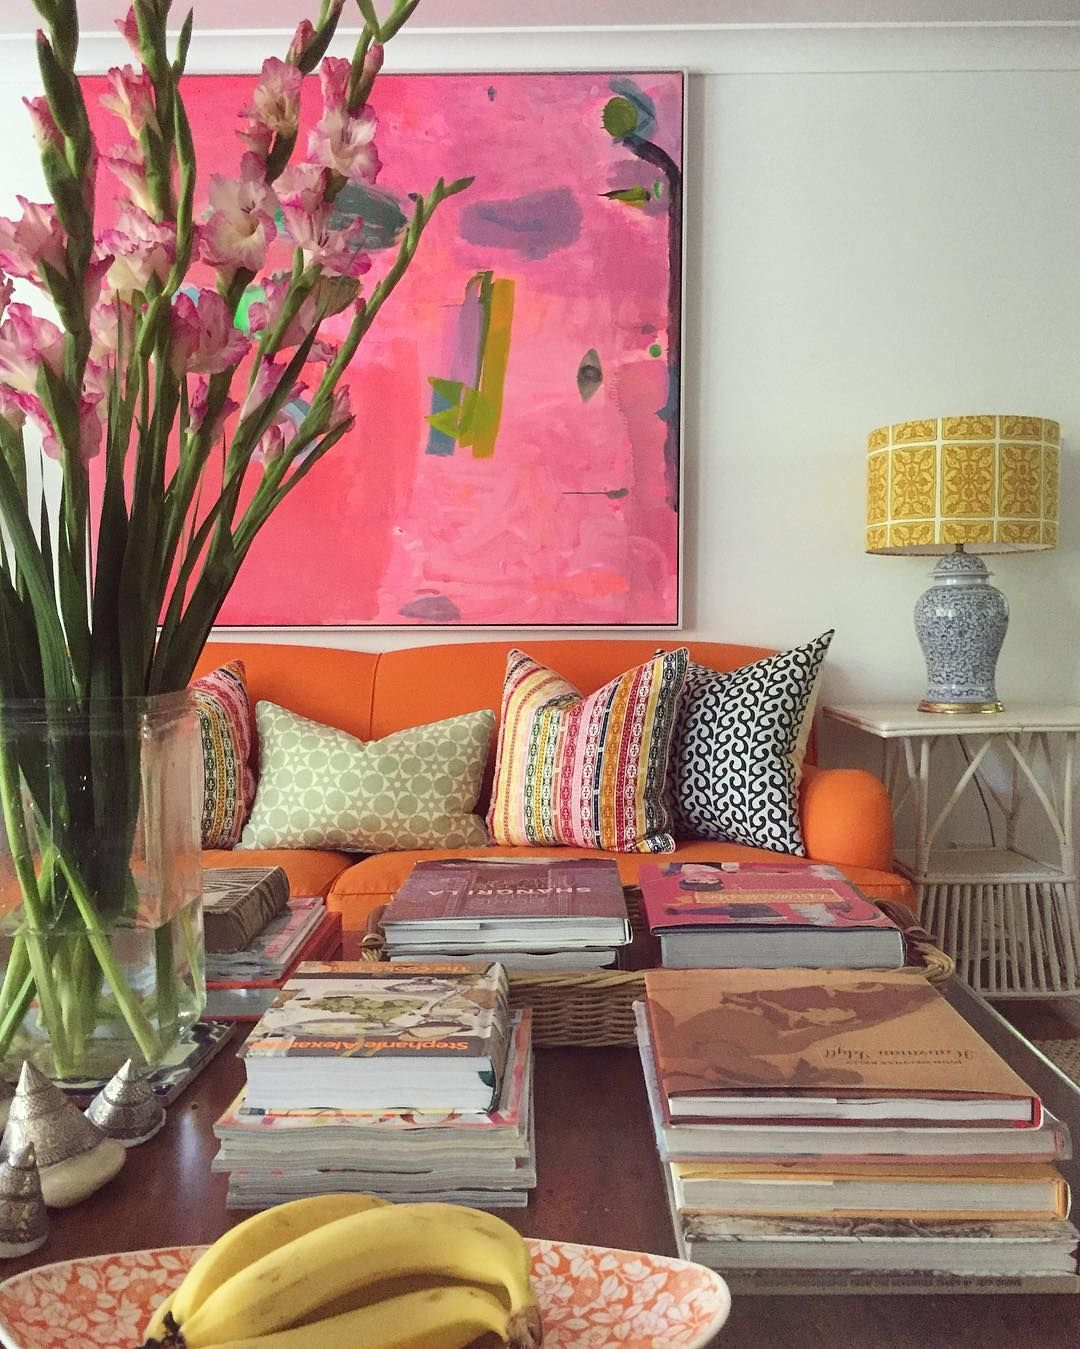 Bright Orange Living Room Accessories: 51.7k Followers, 1,712 Following, 1,595 Posts